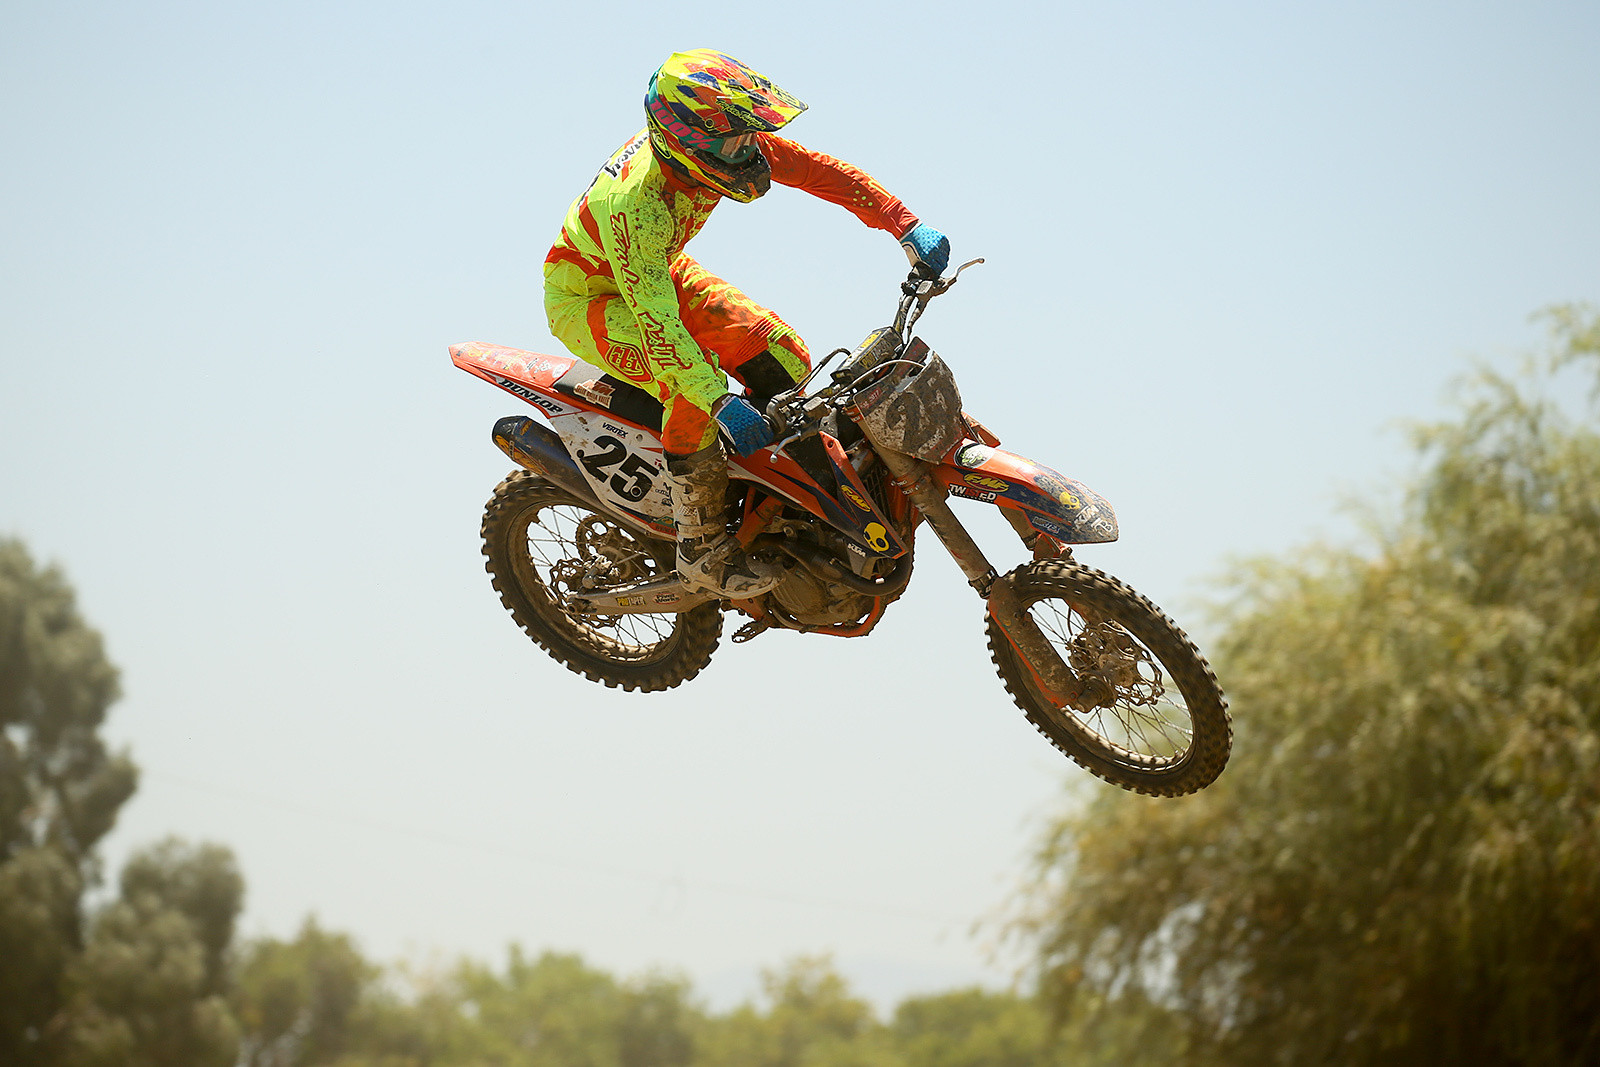 Nate Ramsey was also back from Loretta's and having fun.